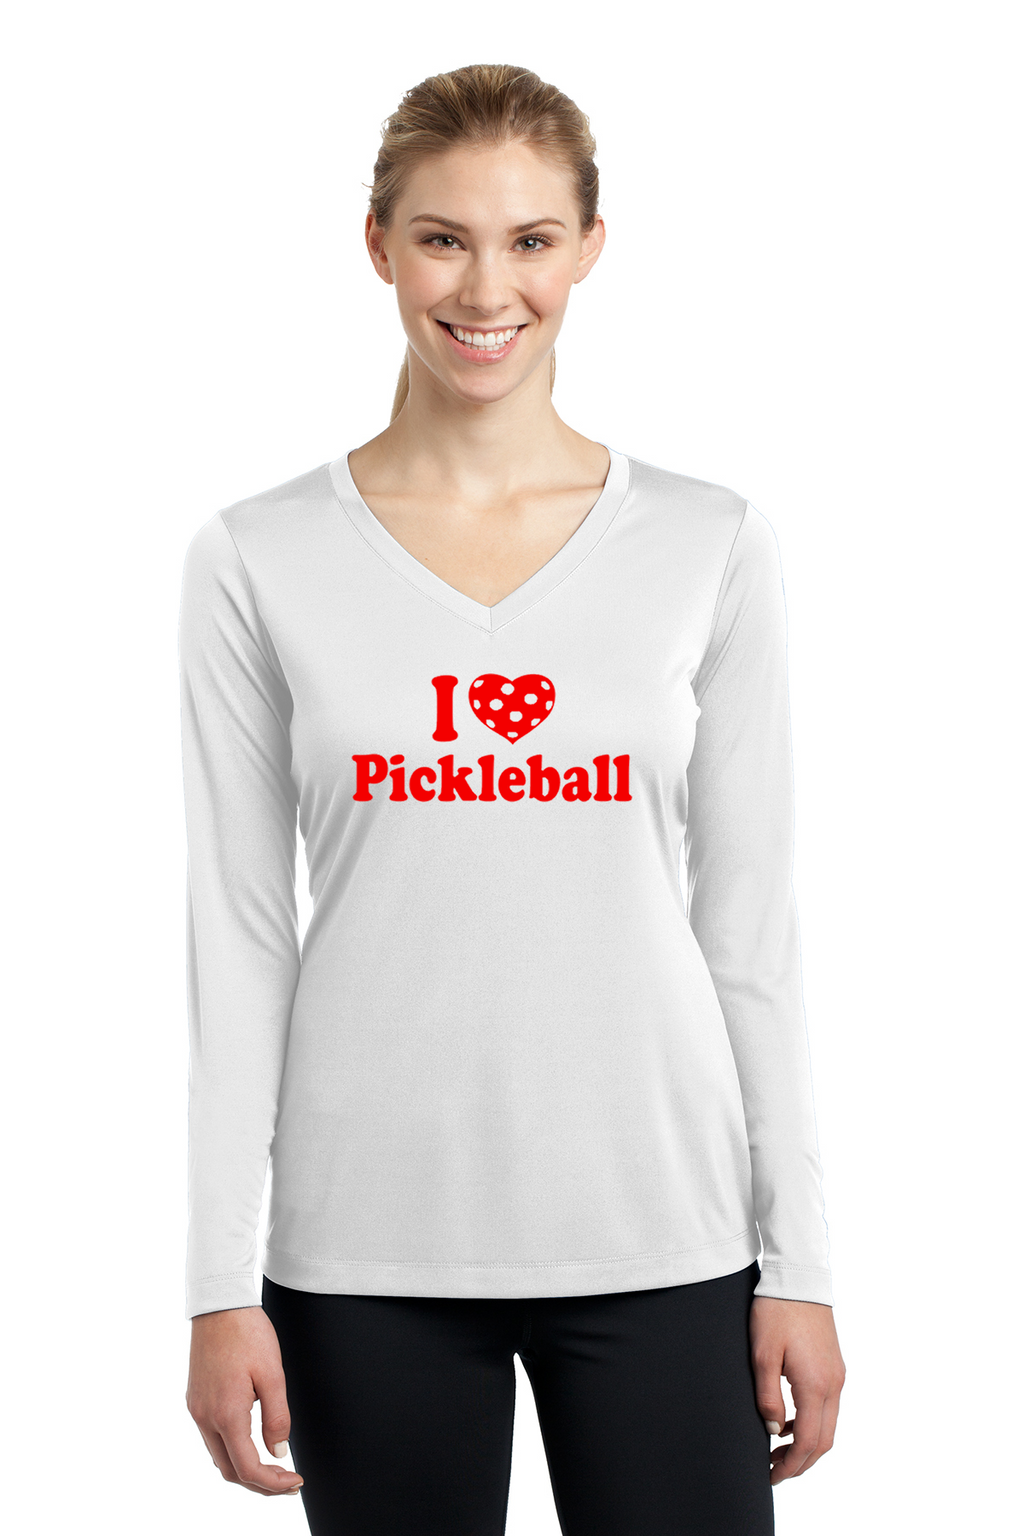 Ladies Long Sleeve V-Neck Performance Shirt 'I Love Pickleball'